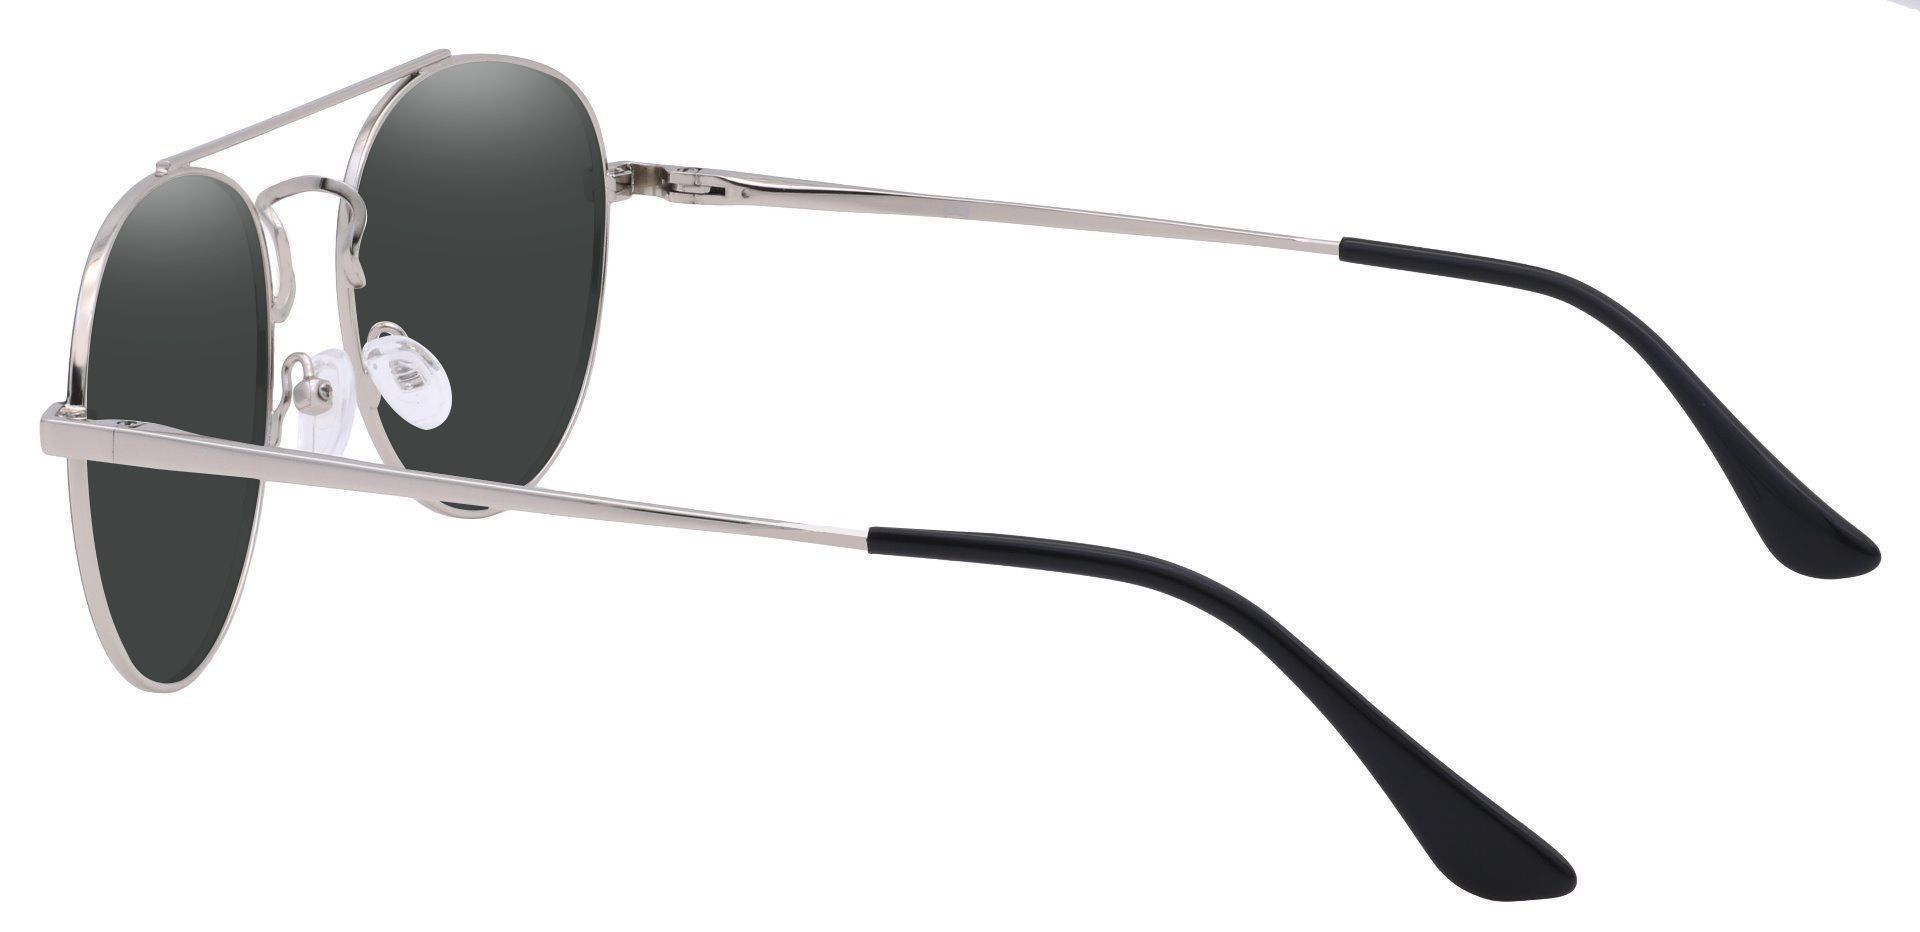 Trapp Aviator Lined Bifocal Sunglasses - Gray Frame With Gray Lenses